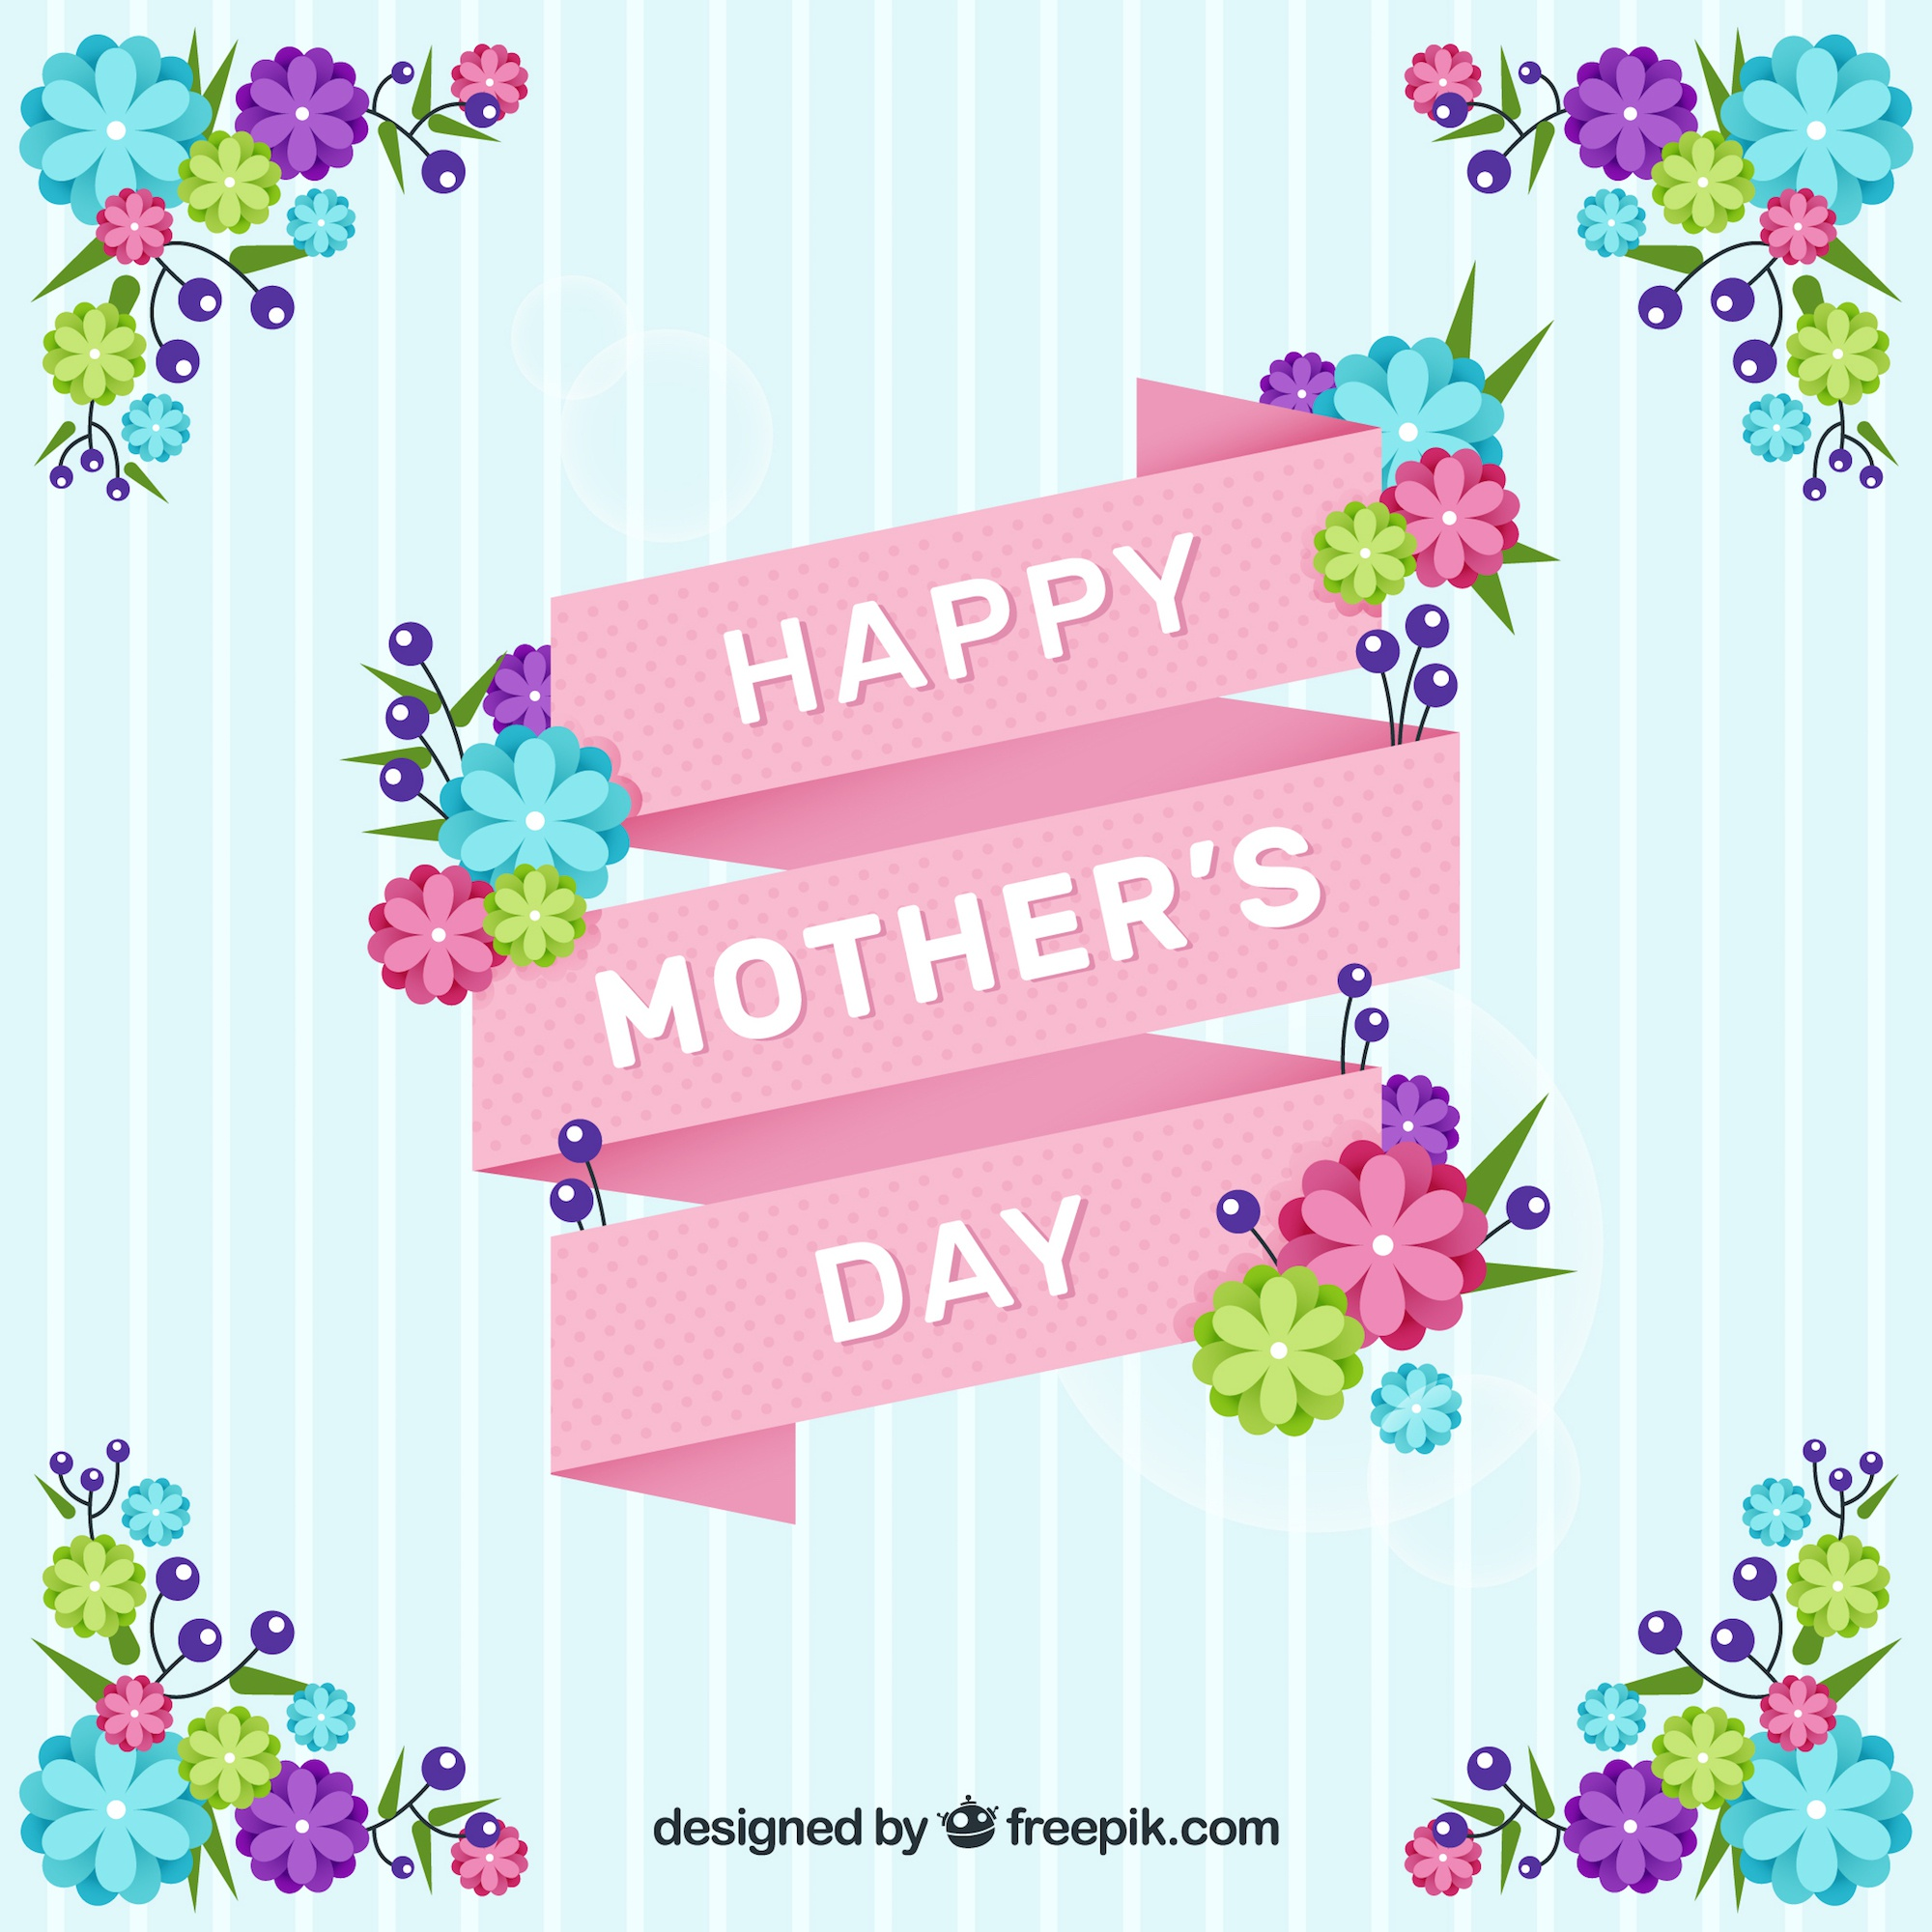 Striped background with pink ribbon and colored flowers for mother's day